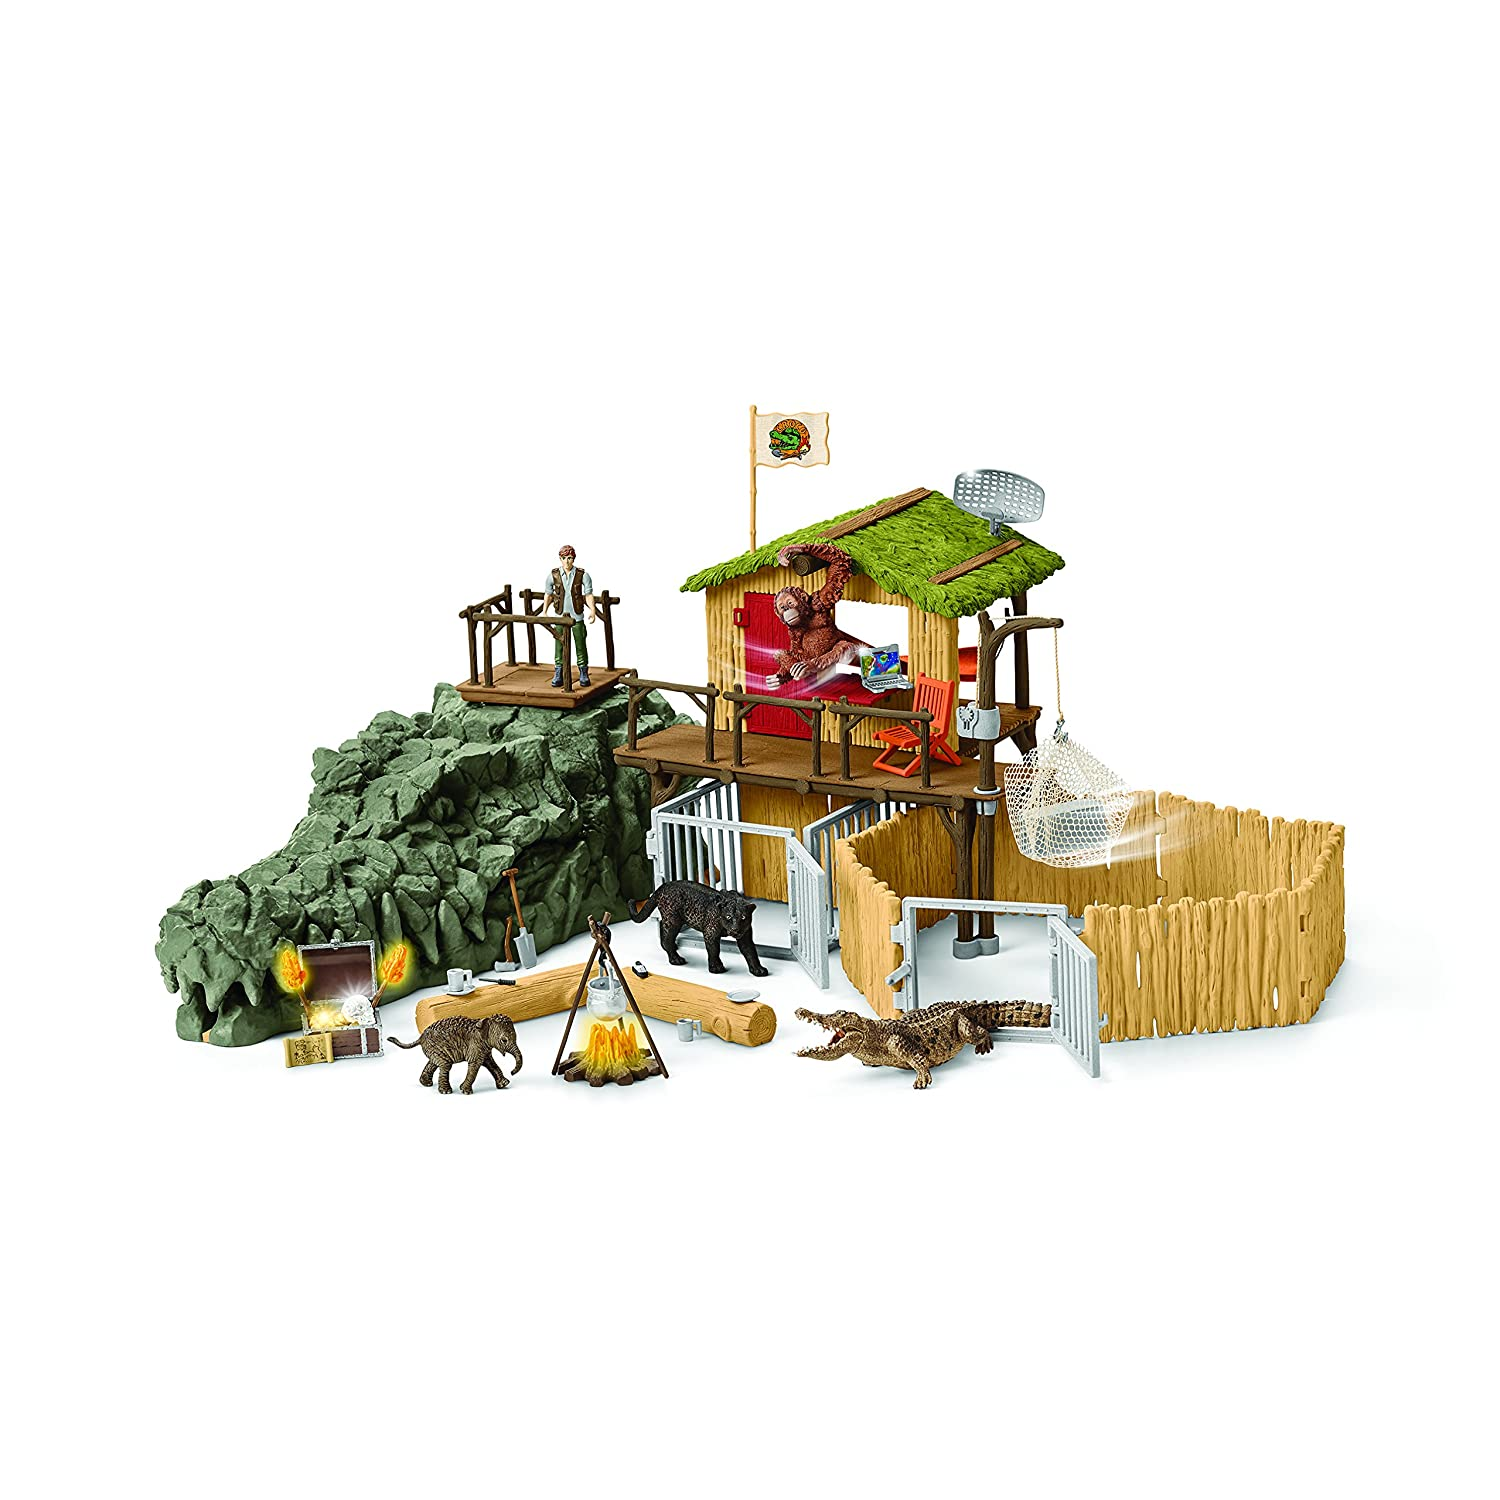 A Schleich Croco Jungle Research Station